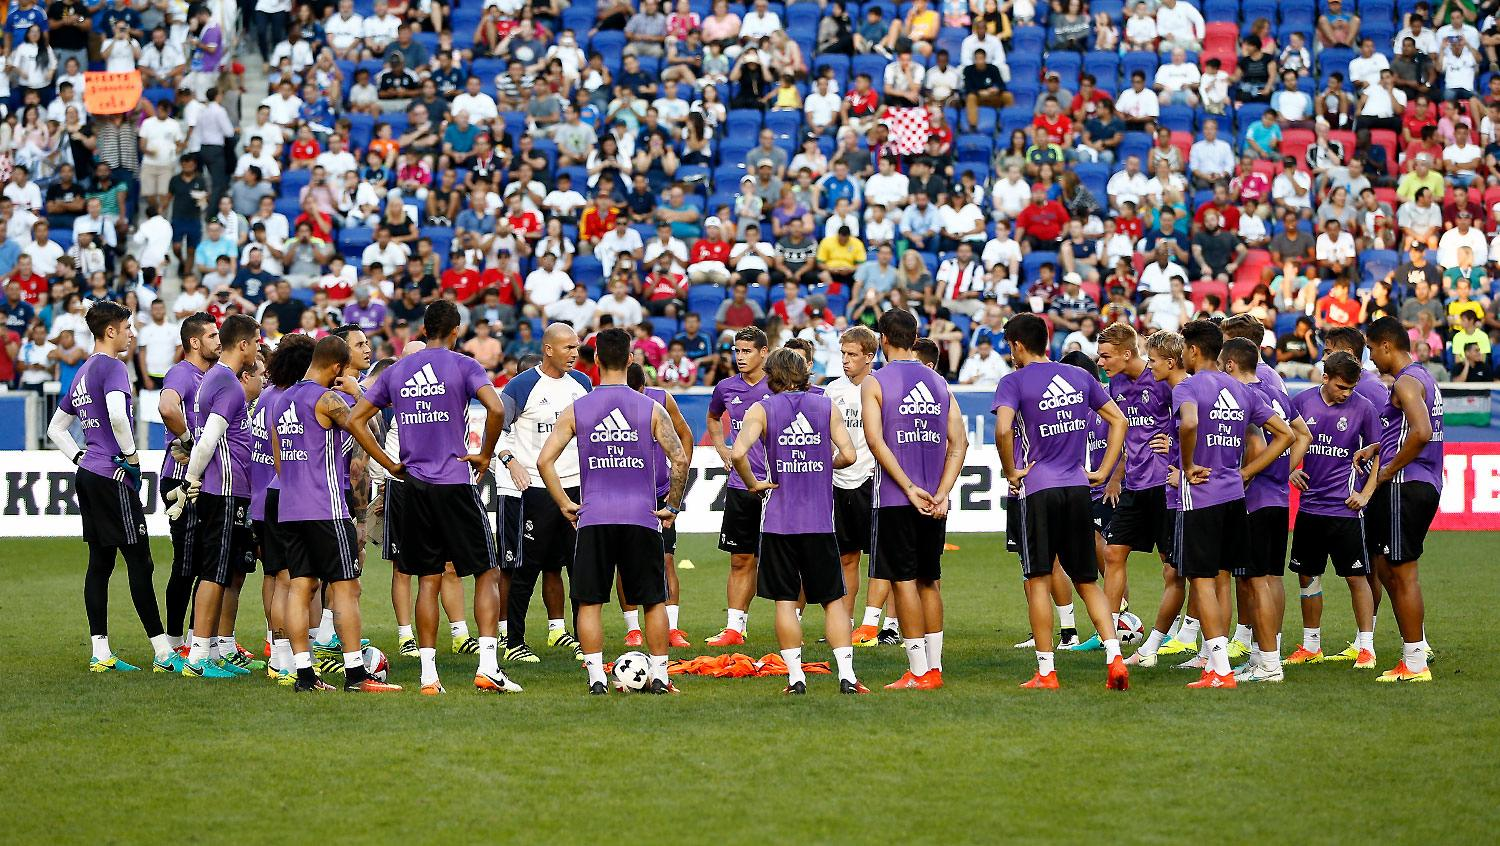 Real Madrid - Entrenamiento del Real Madrid - 03-08-2016